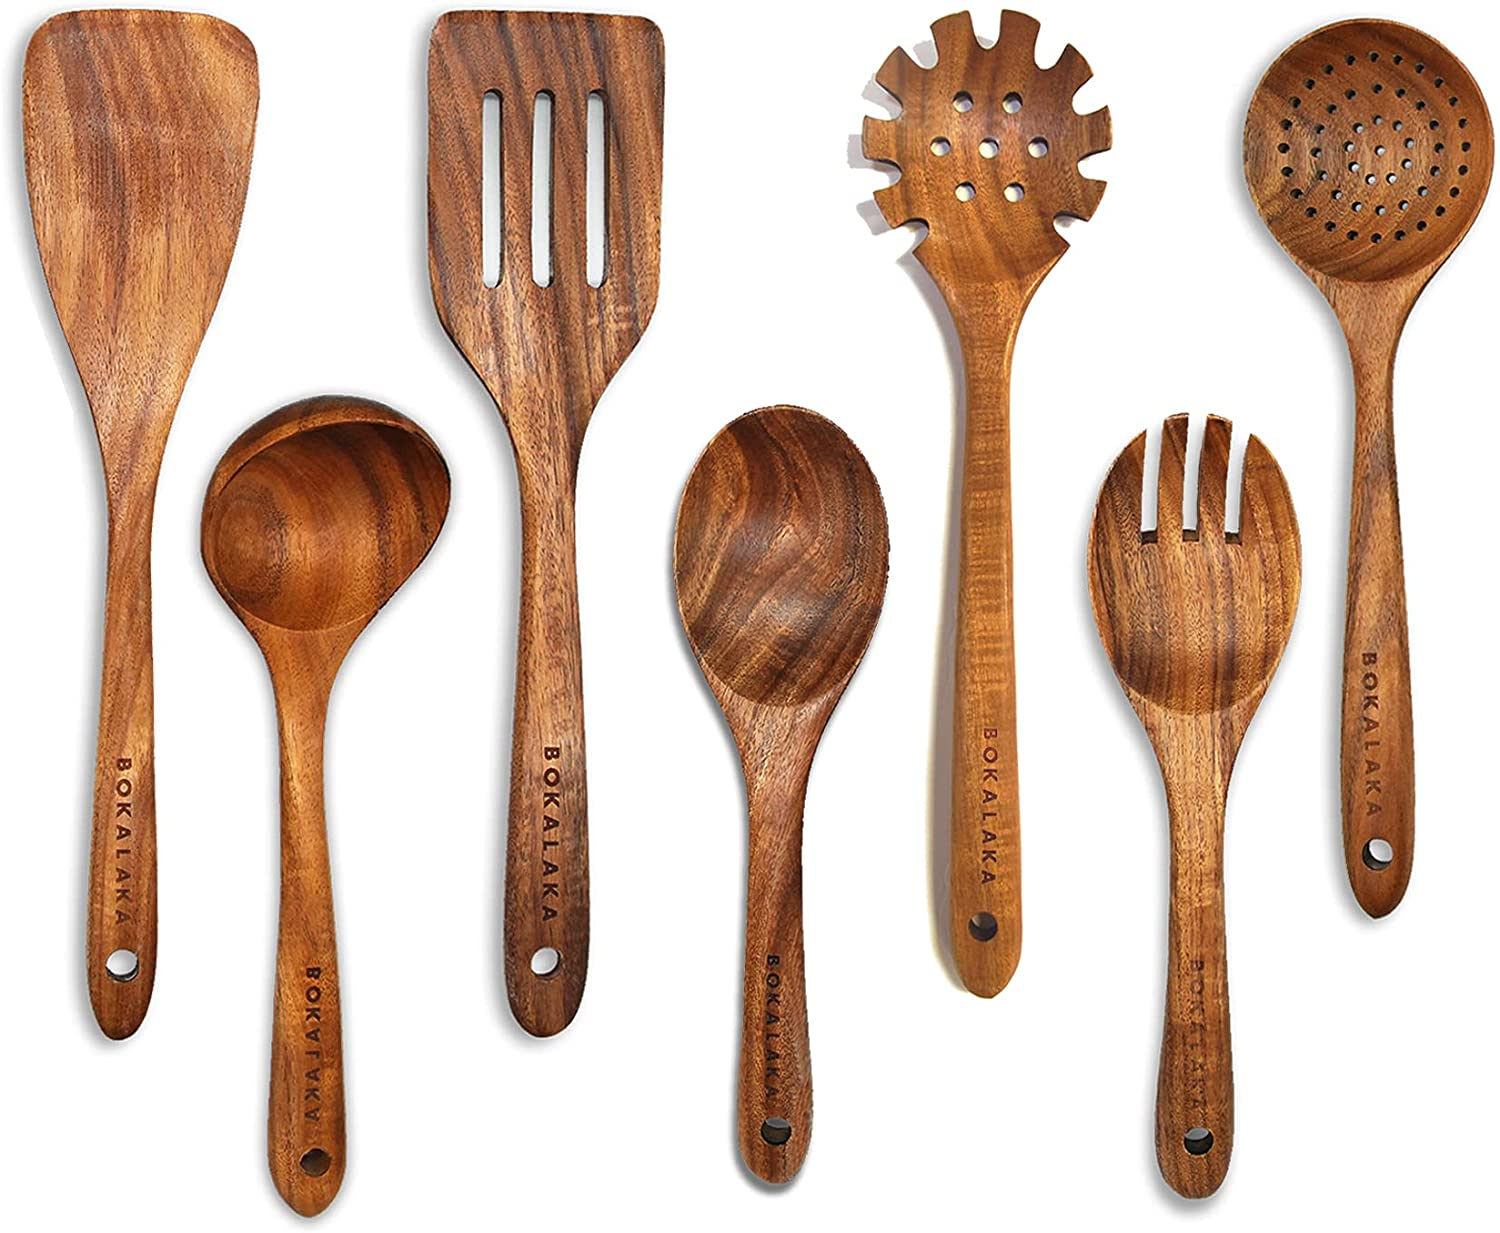 Wooden Spoons for Cooking Teak New York Mall wholesale 7Pcs Utensils